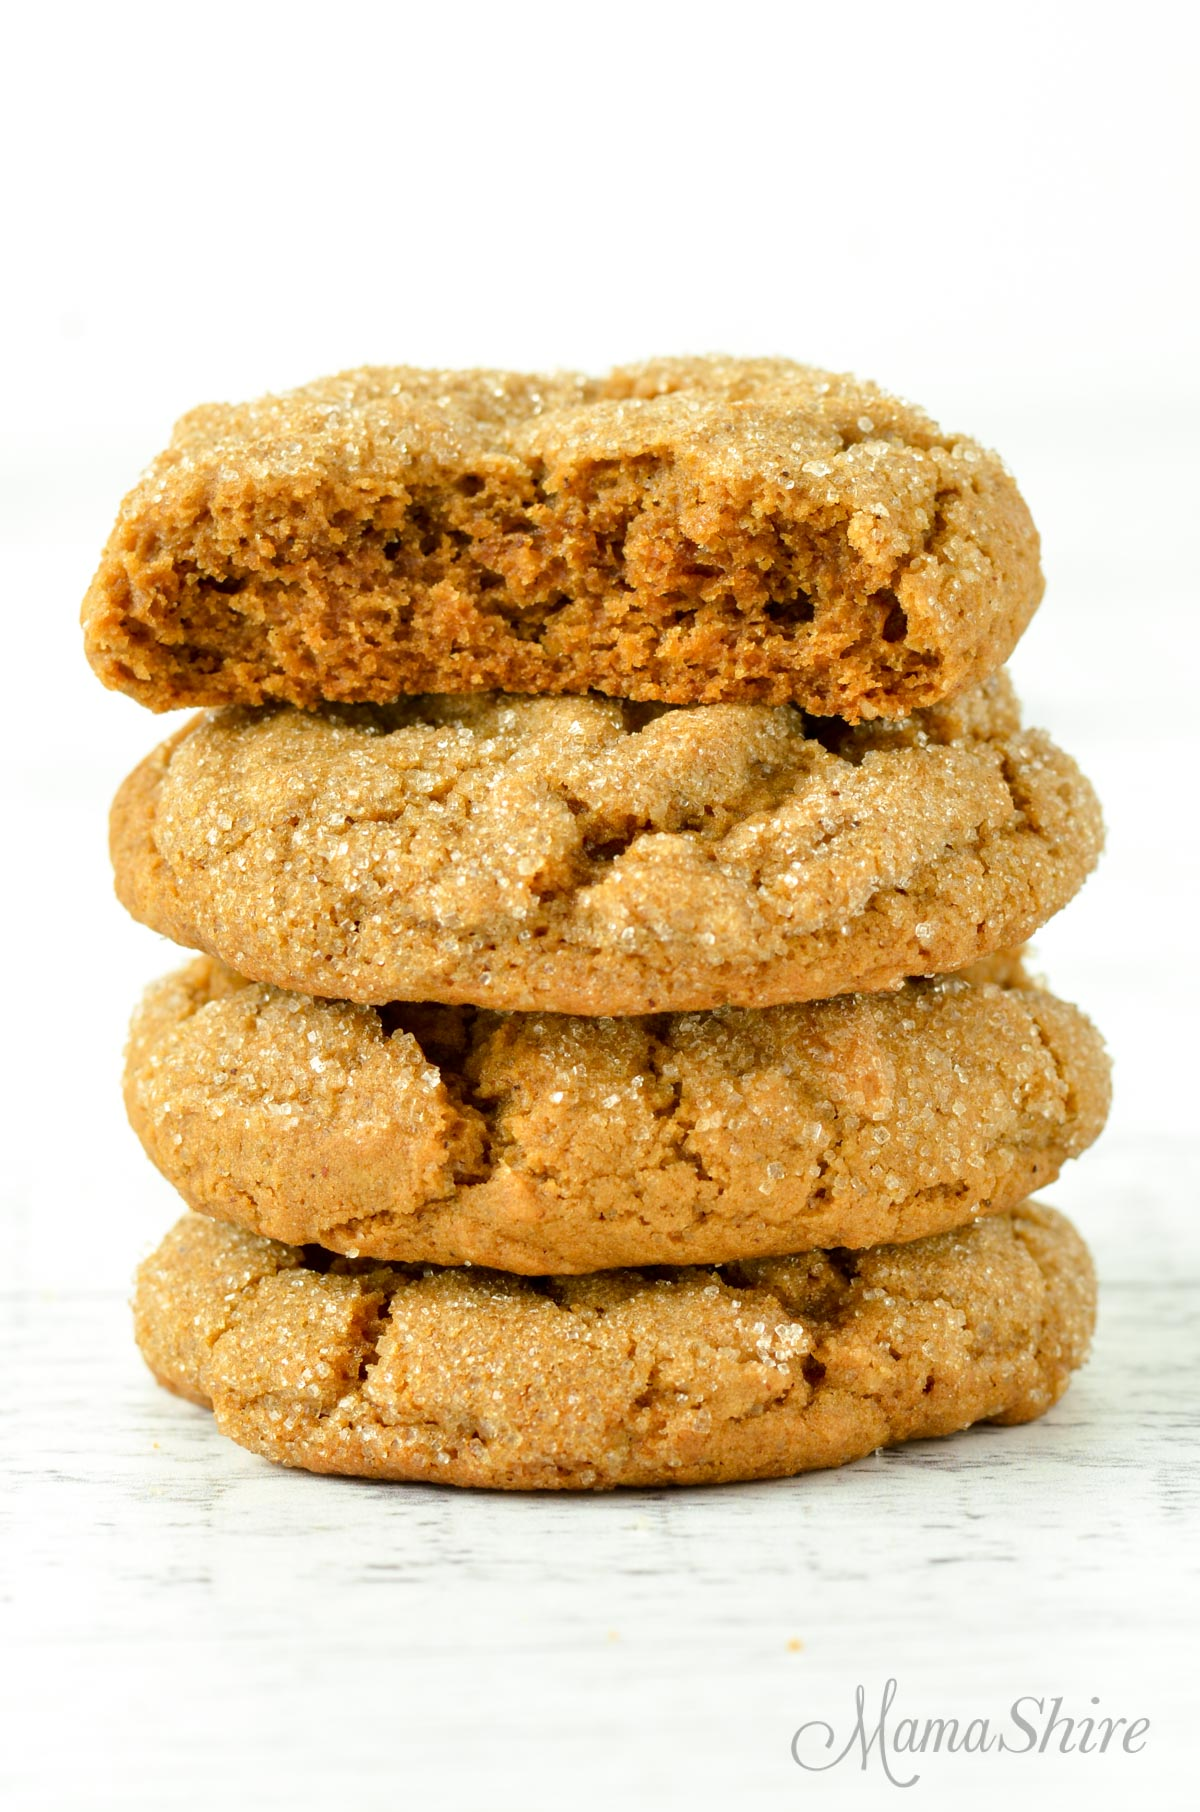 A stack of yummy gluten-free molasses cookies.